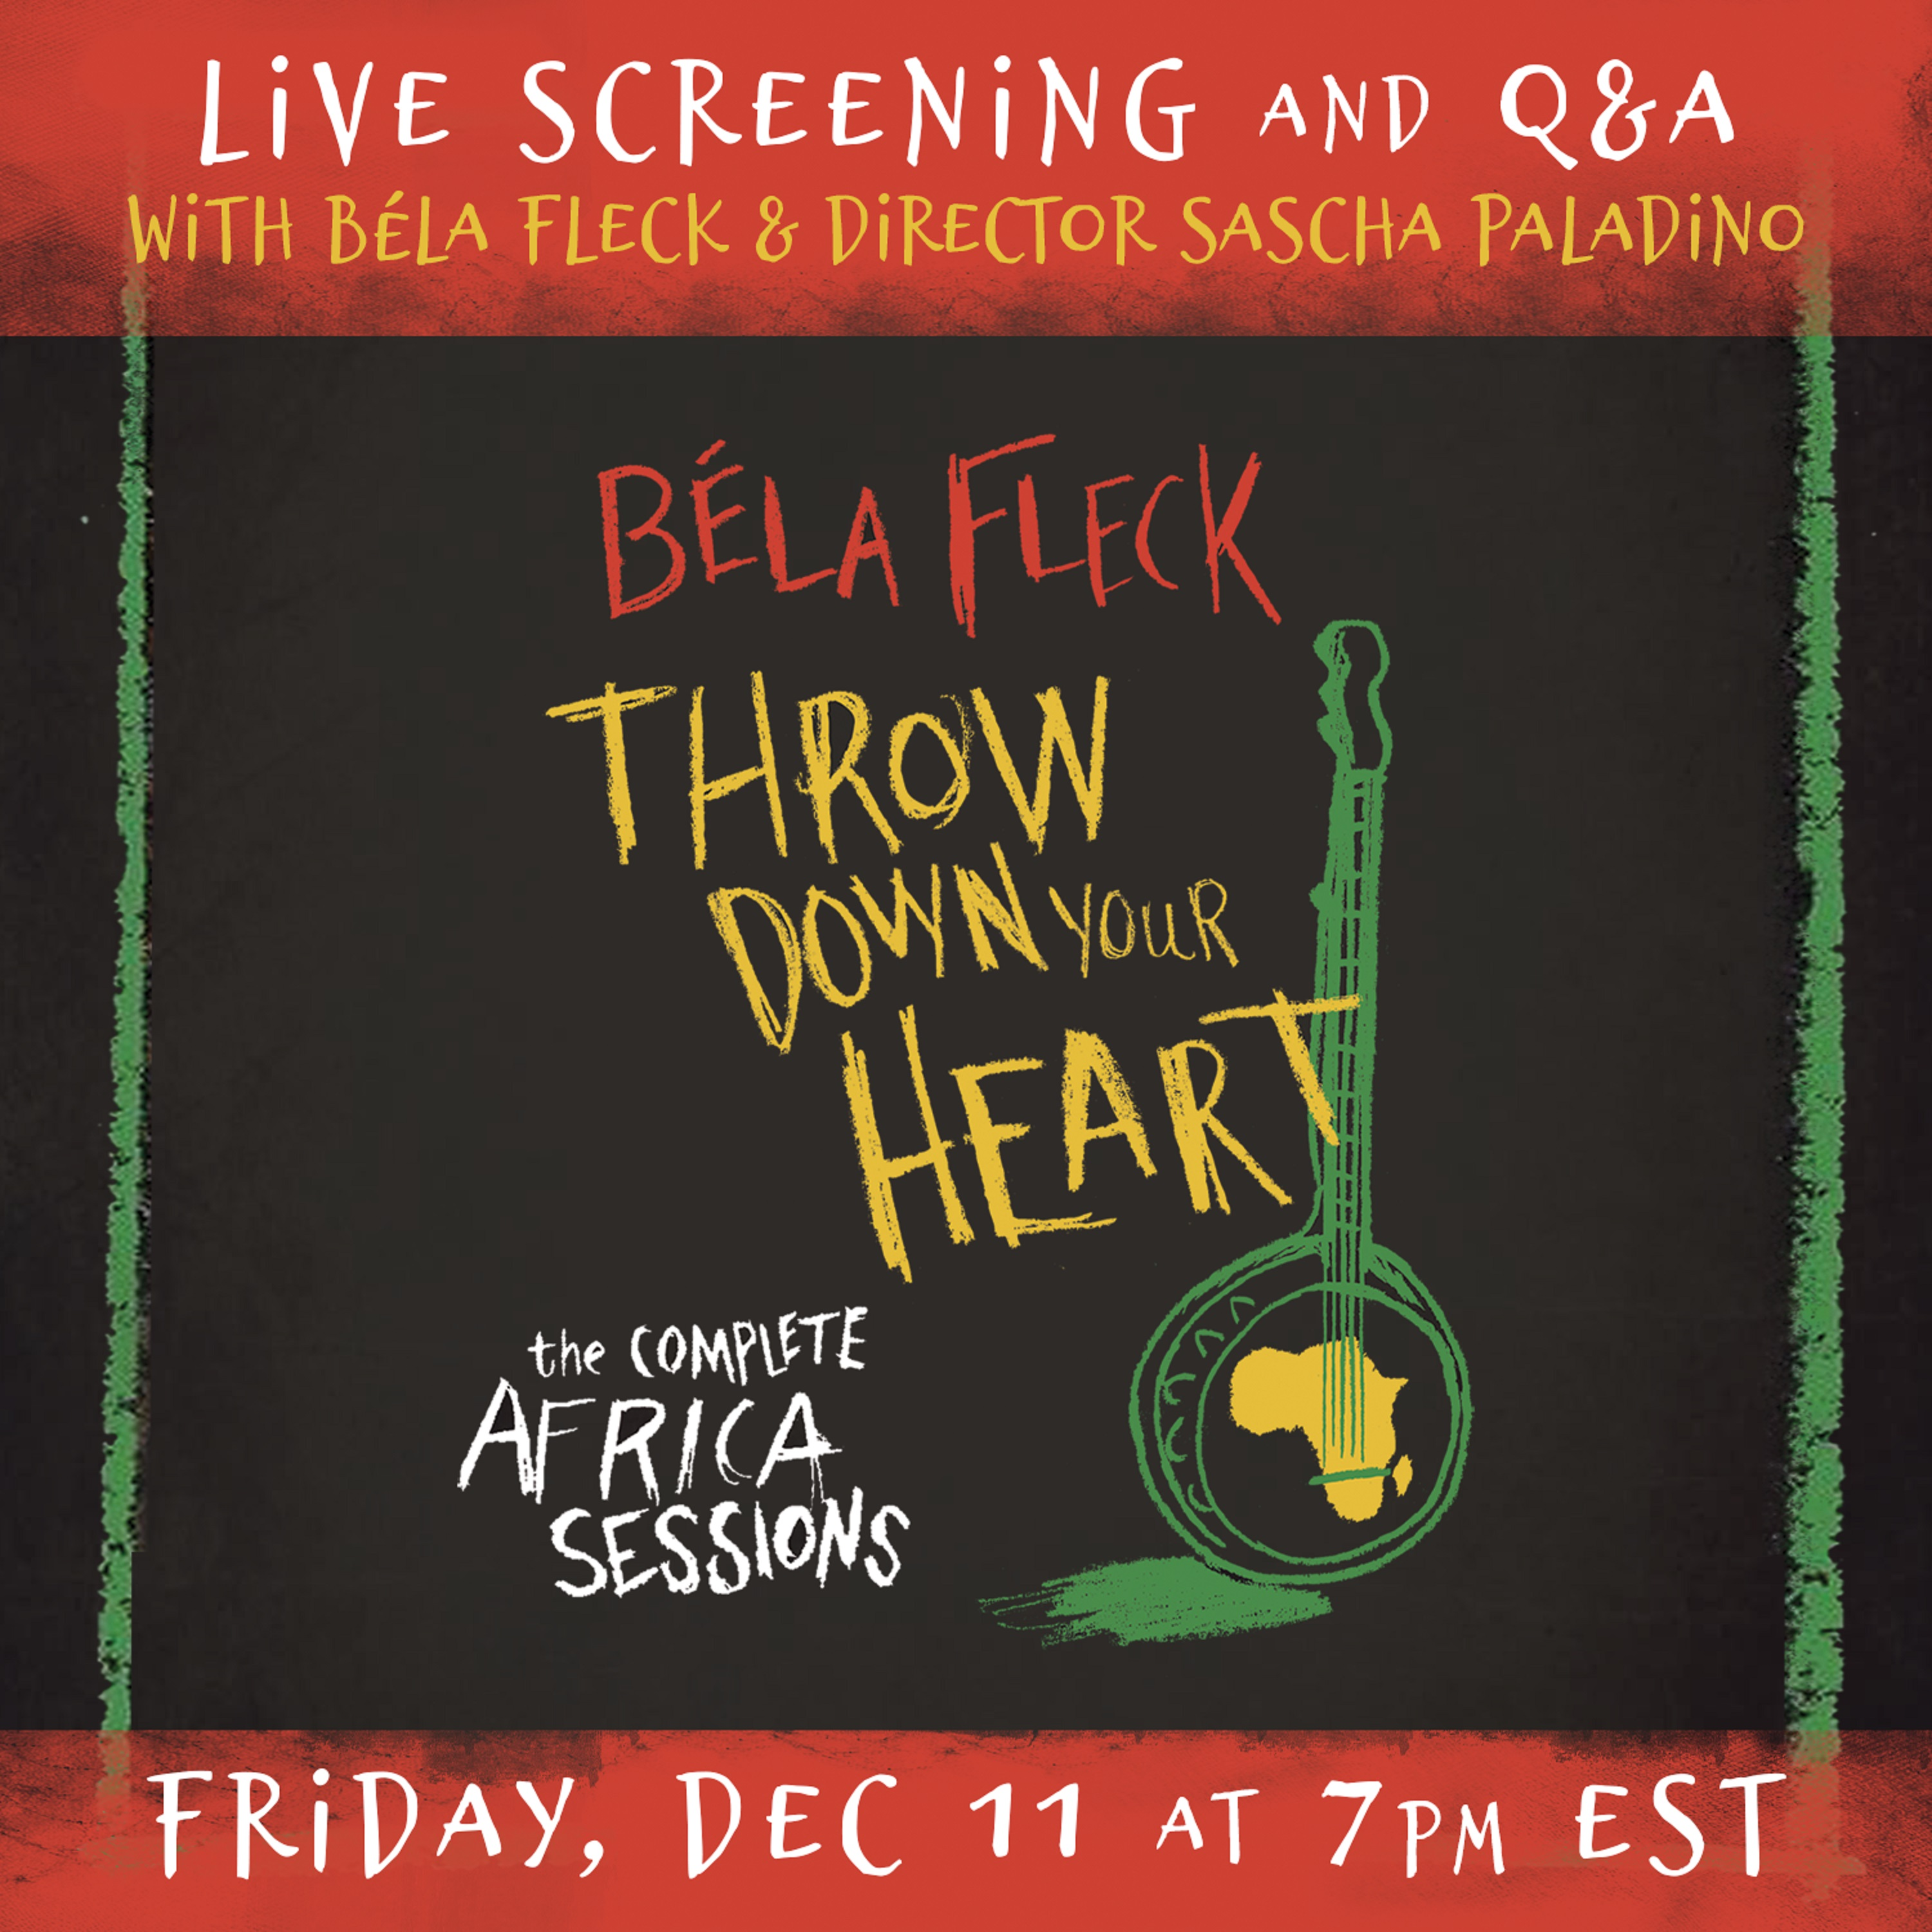 Bela Fleck's Throw Down Your Heart Live Screening and Q&A